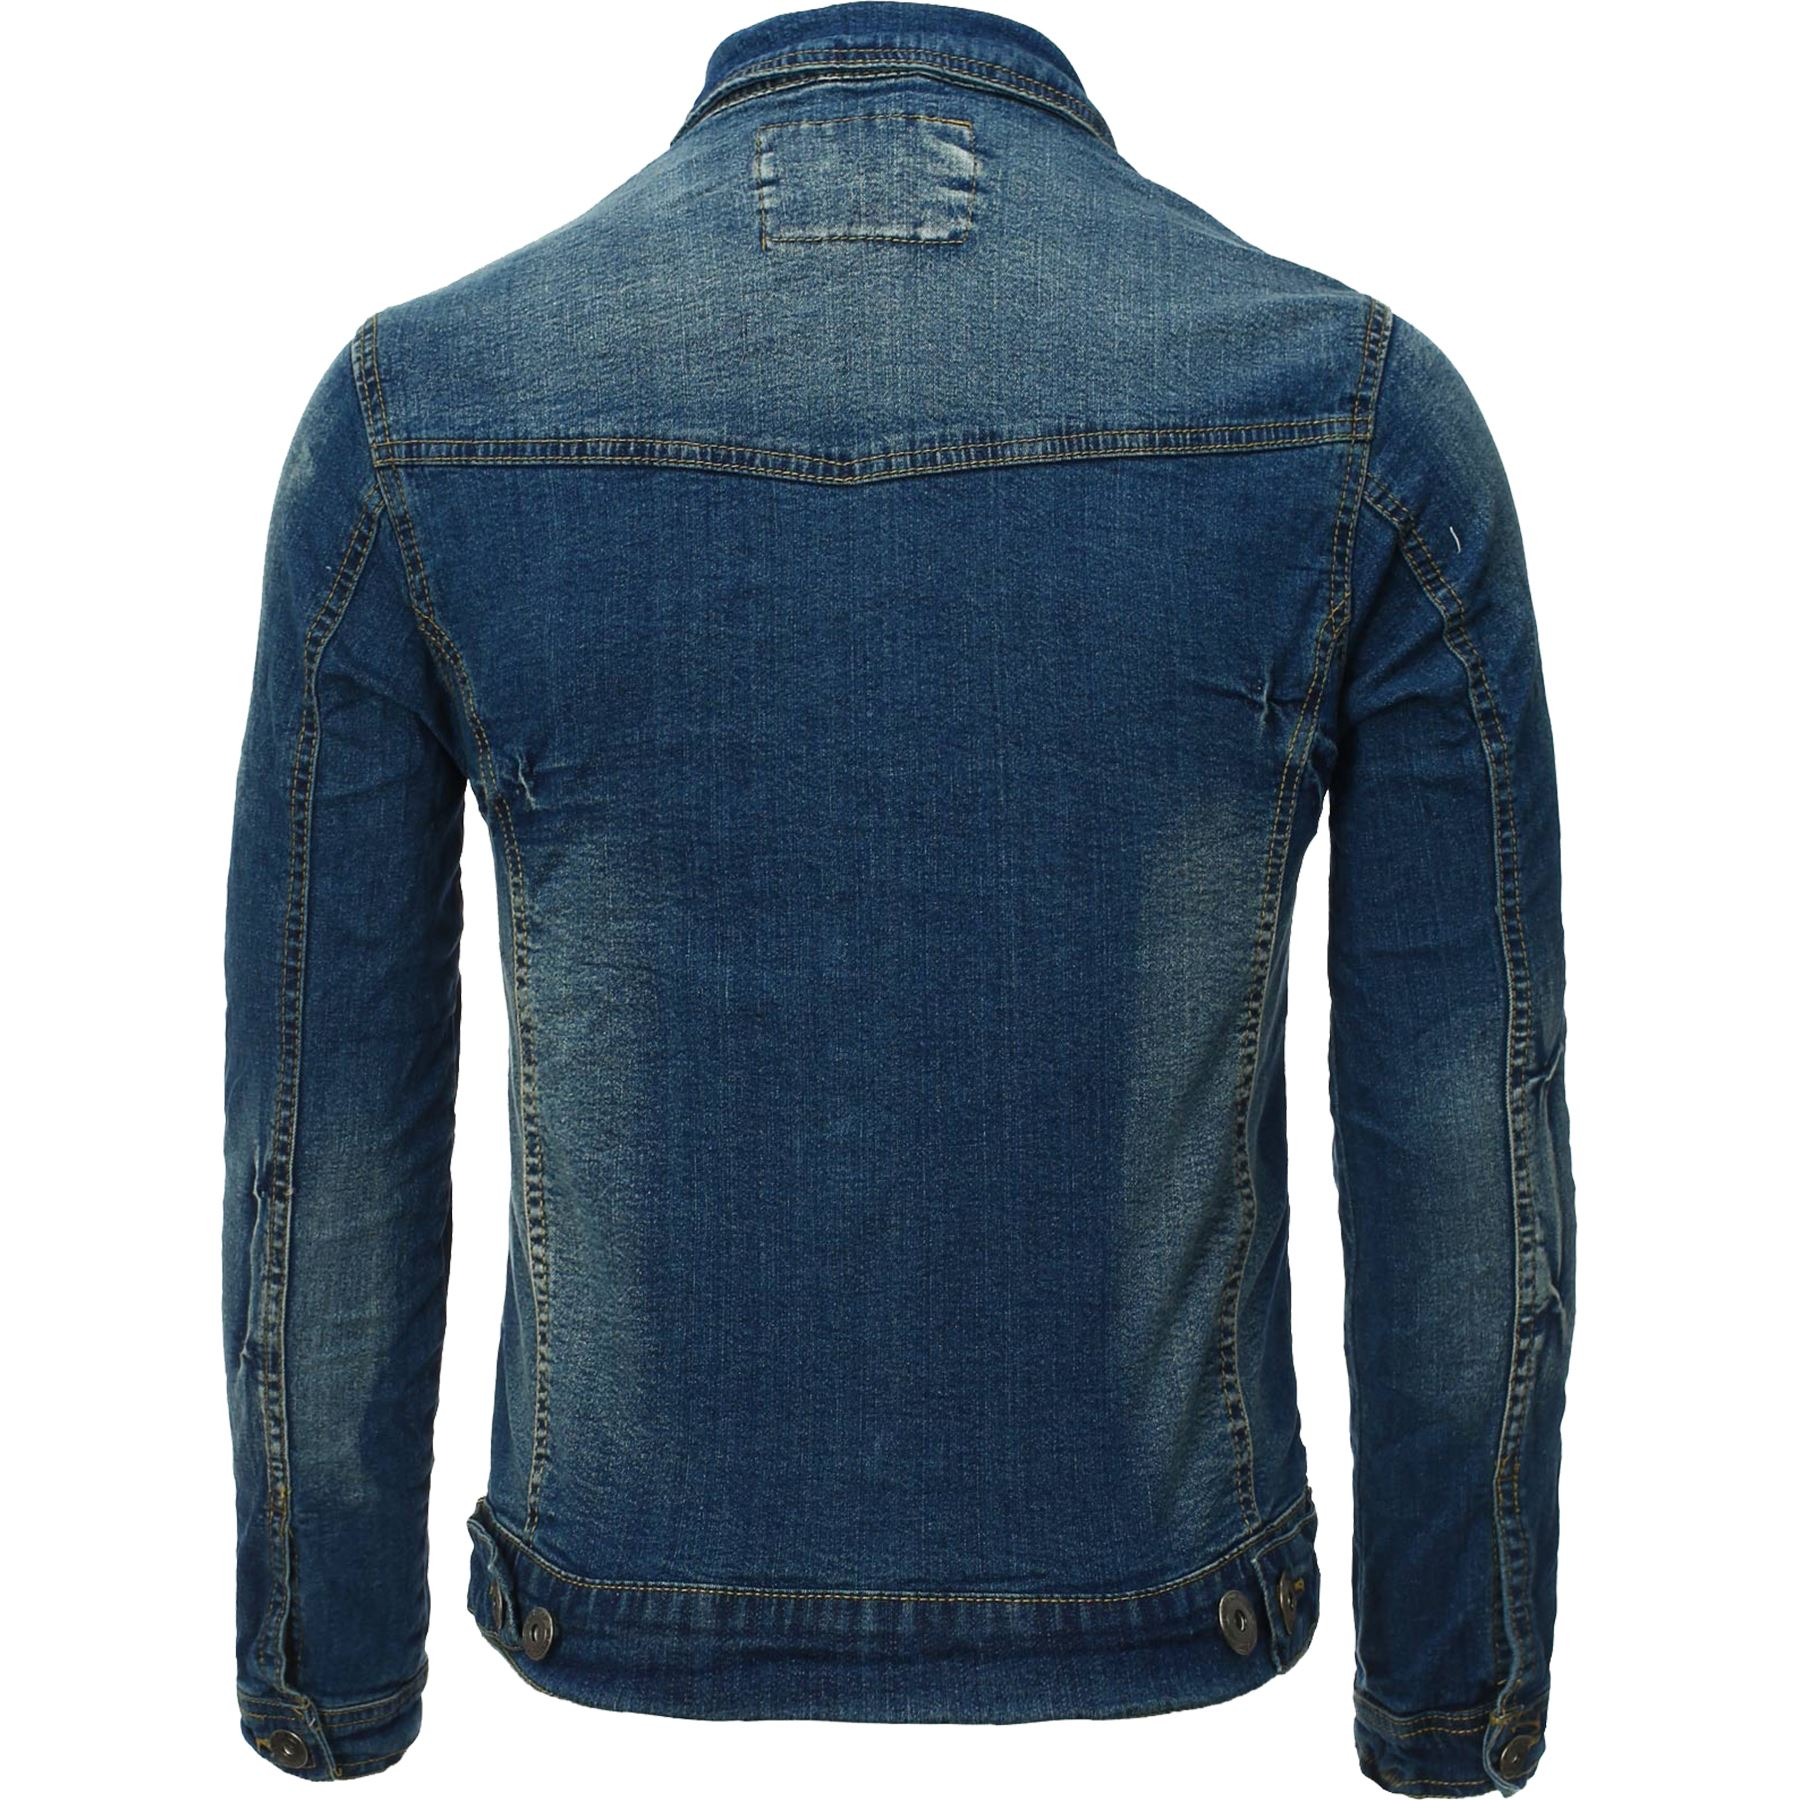 Mens-Classic-Stretch-Denim-Jean-Jacket-Western-Distressed-Vintage-Style-Trucker thumbnail 3